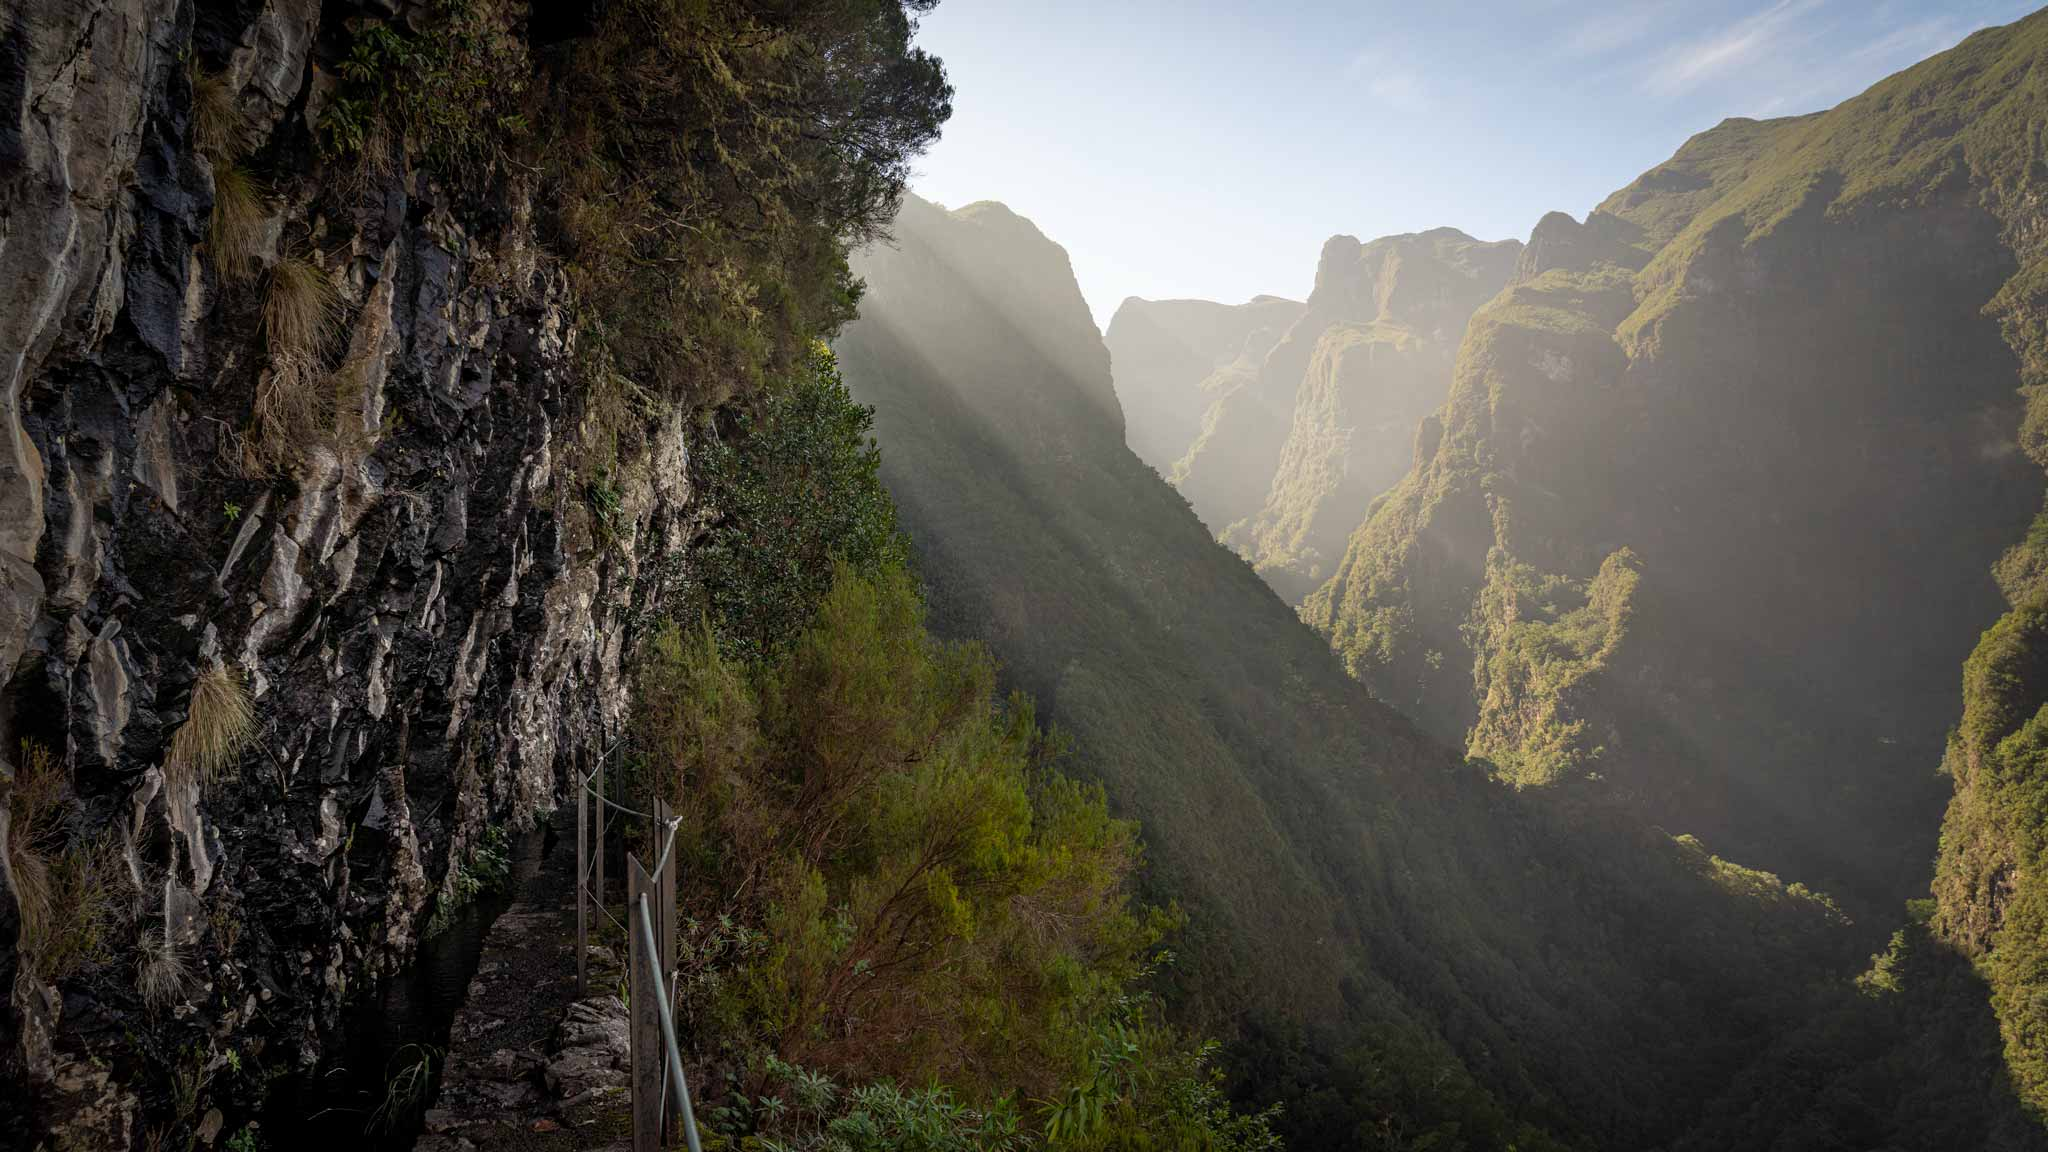 Rays of sun beam across the mountains and the Levada do Caldeirão Verde walking path is on the left